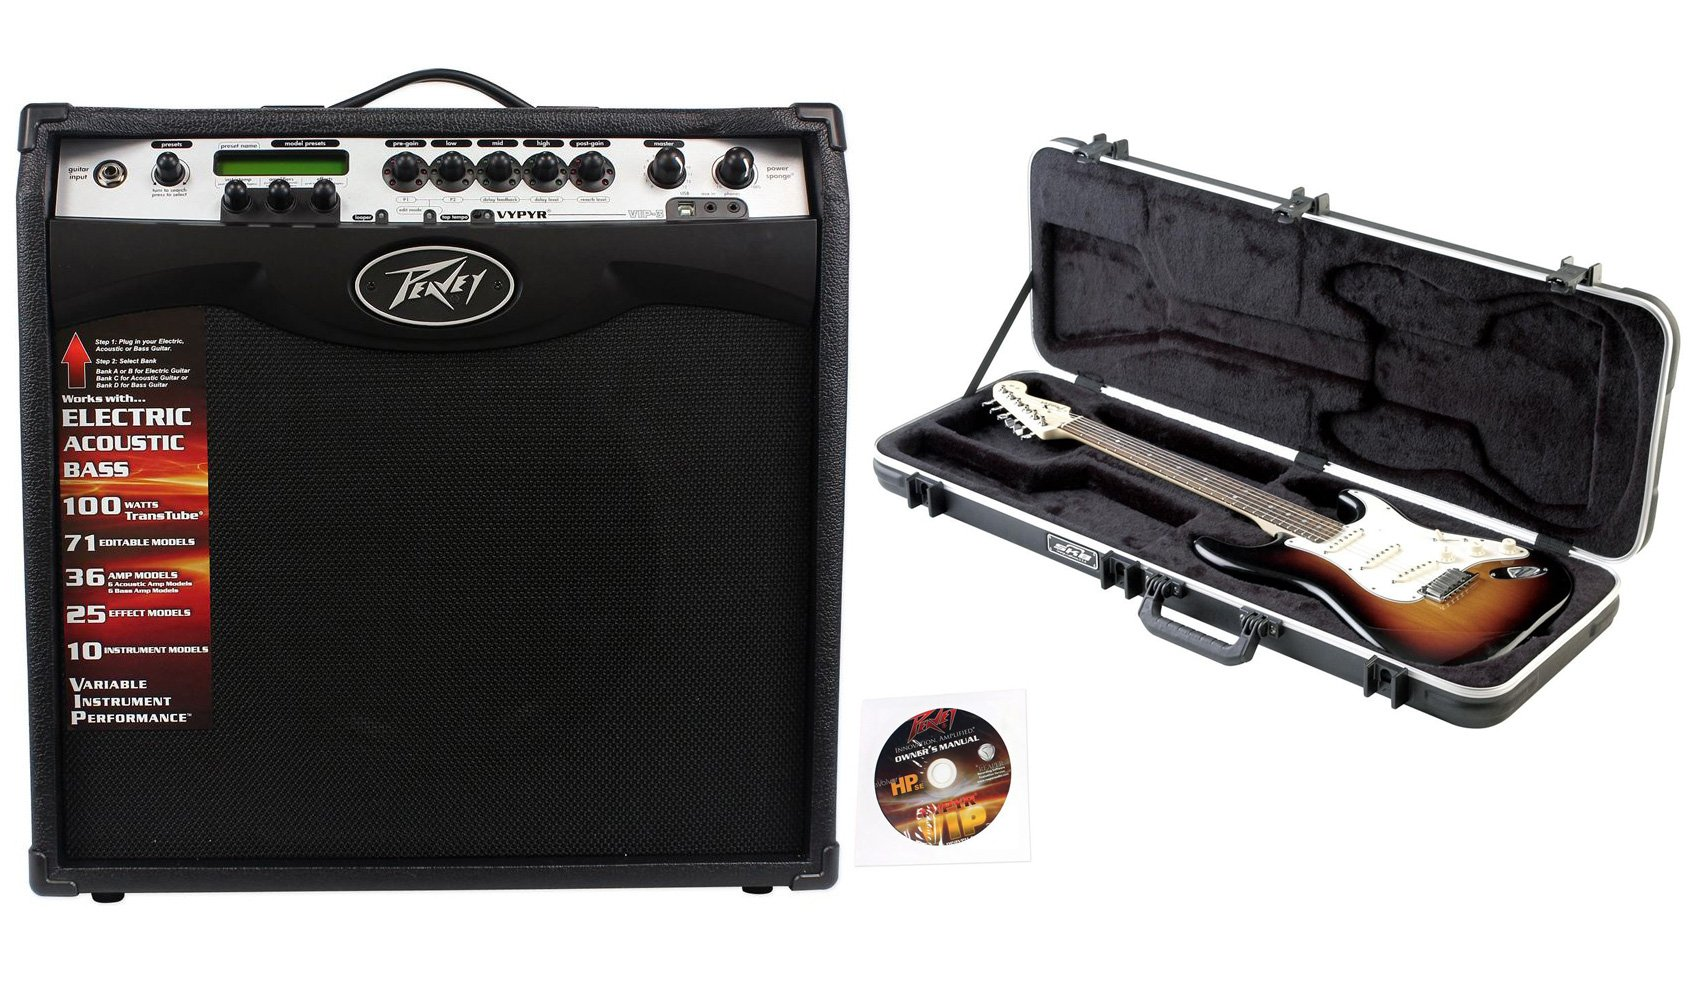 Package: Vypyr VIP 3 12'' 100 Watt Guitar and Bass/Acoustic/Electric Amplifier All In One with Amp Modeling and Bi-Directional USB Input by Peavey